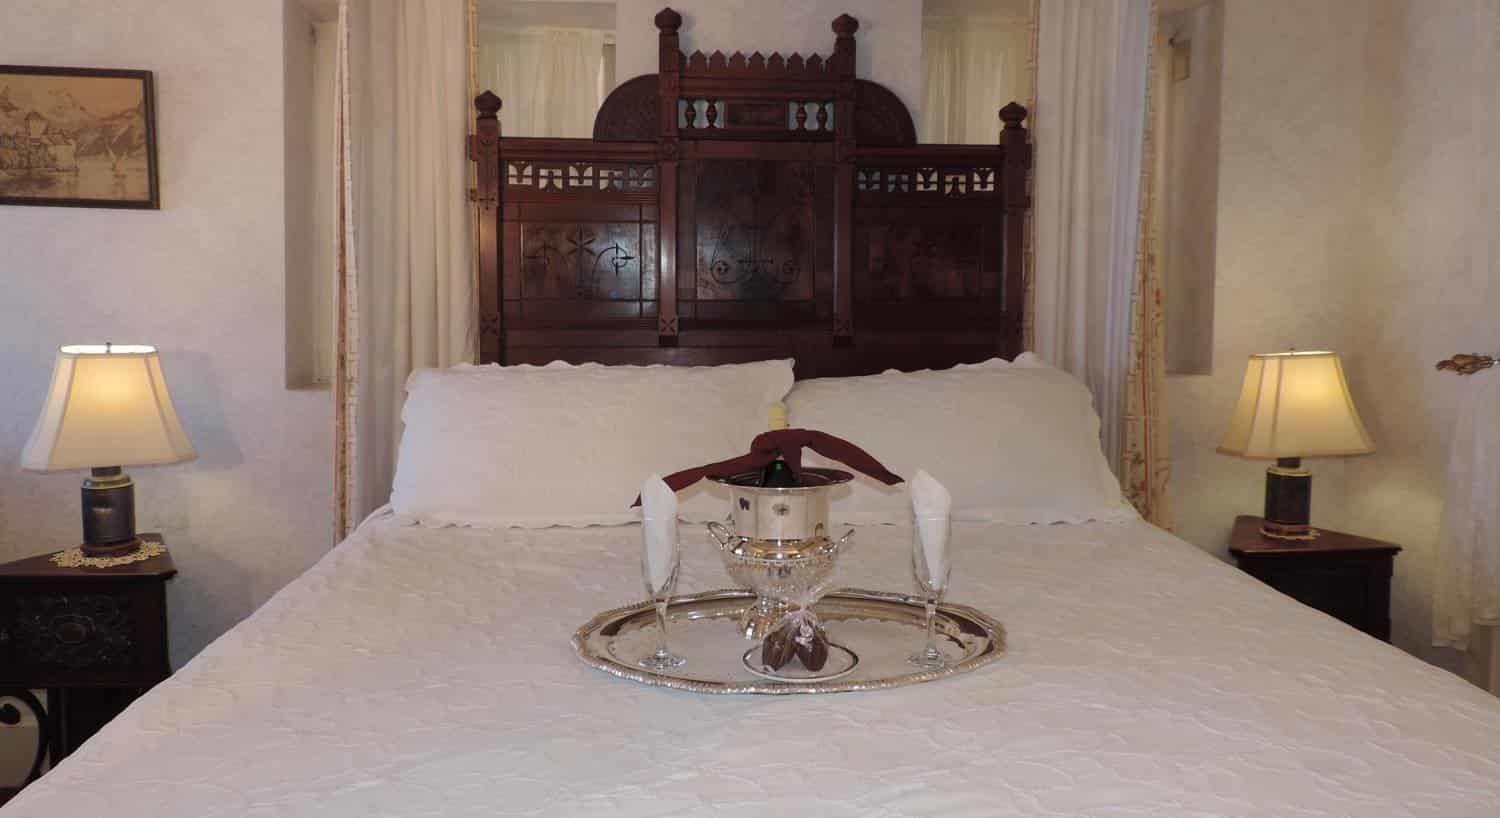 Eastlake's guest bed with tall, wood, carved headboard, white bedding, matching nightstands, and chilled champagne on the bed